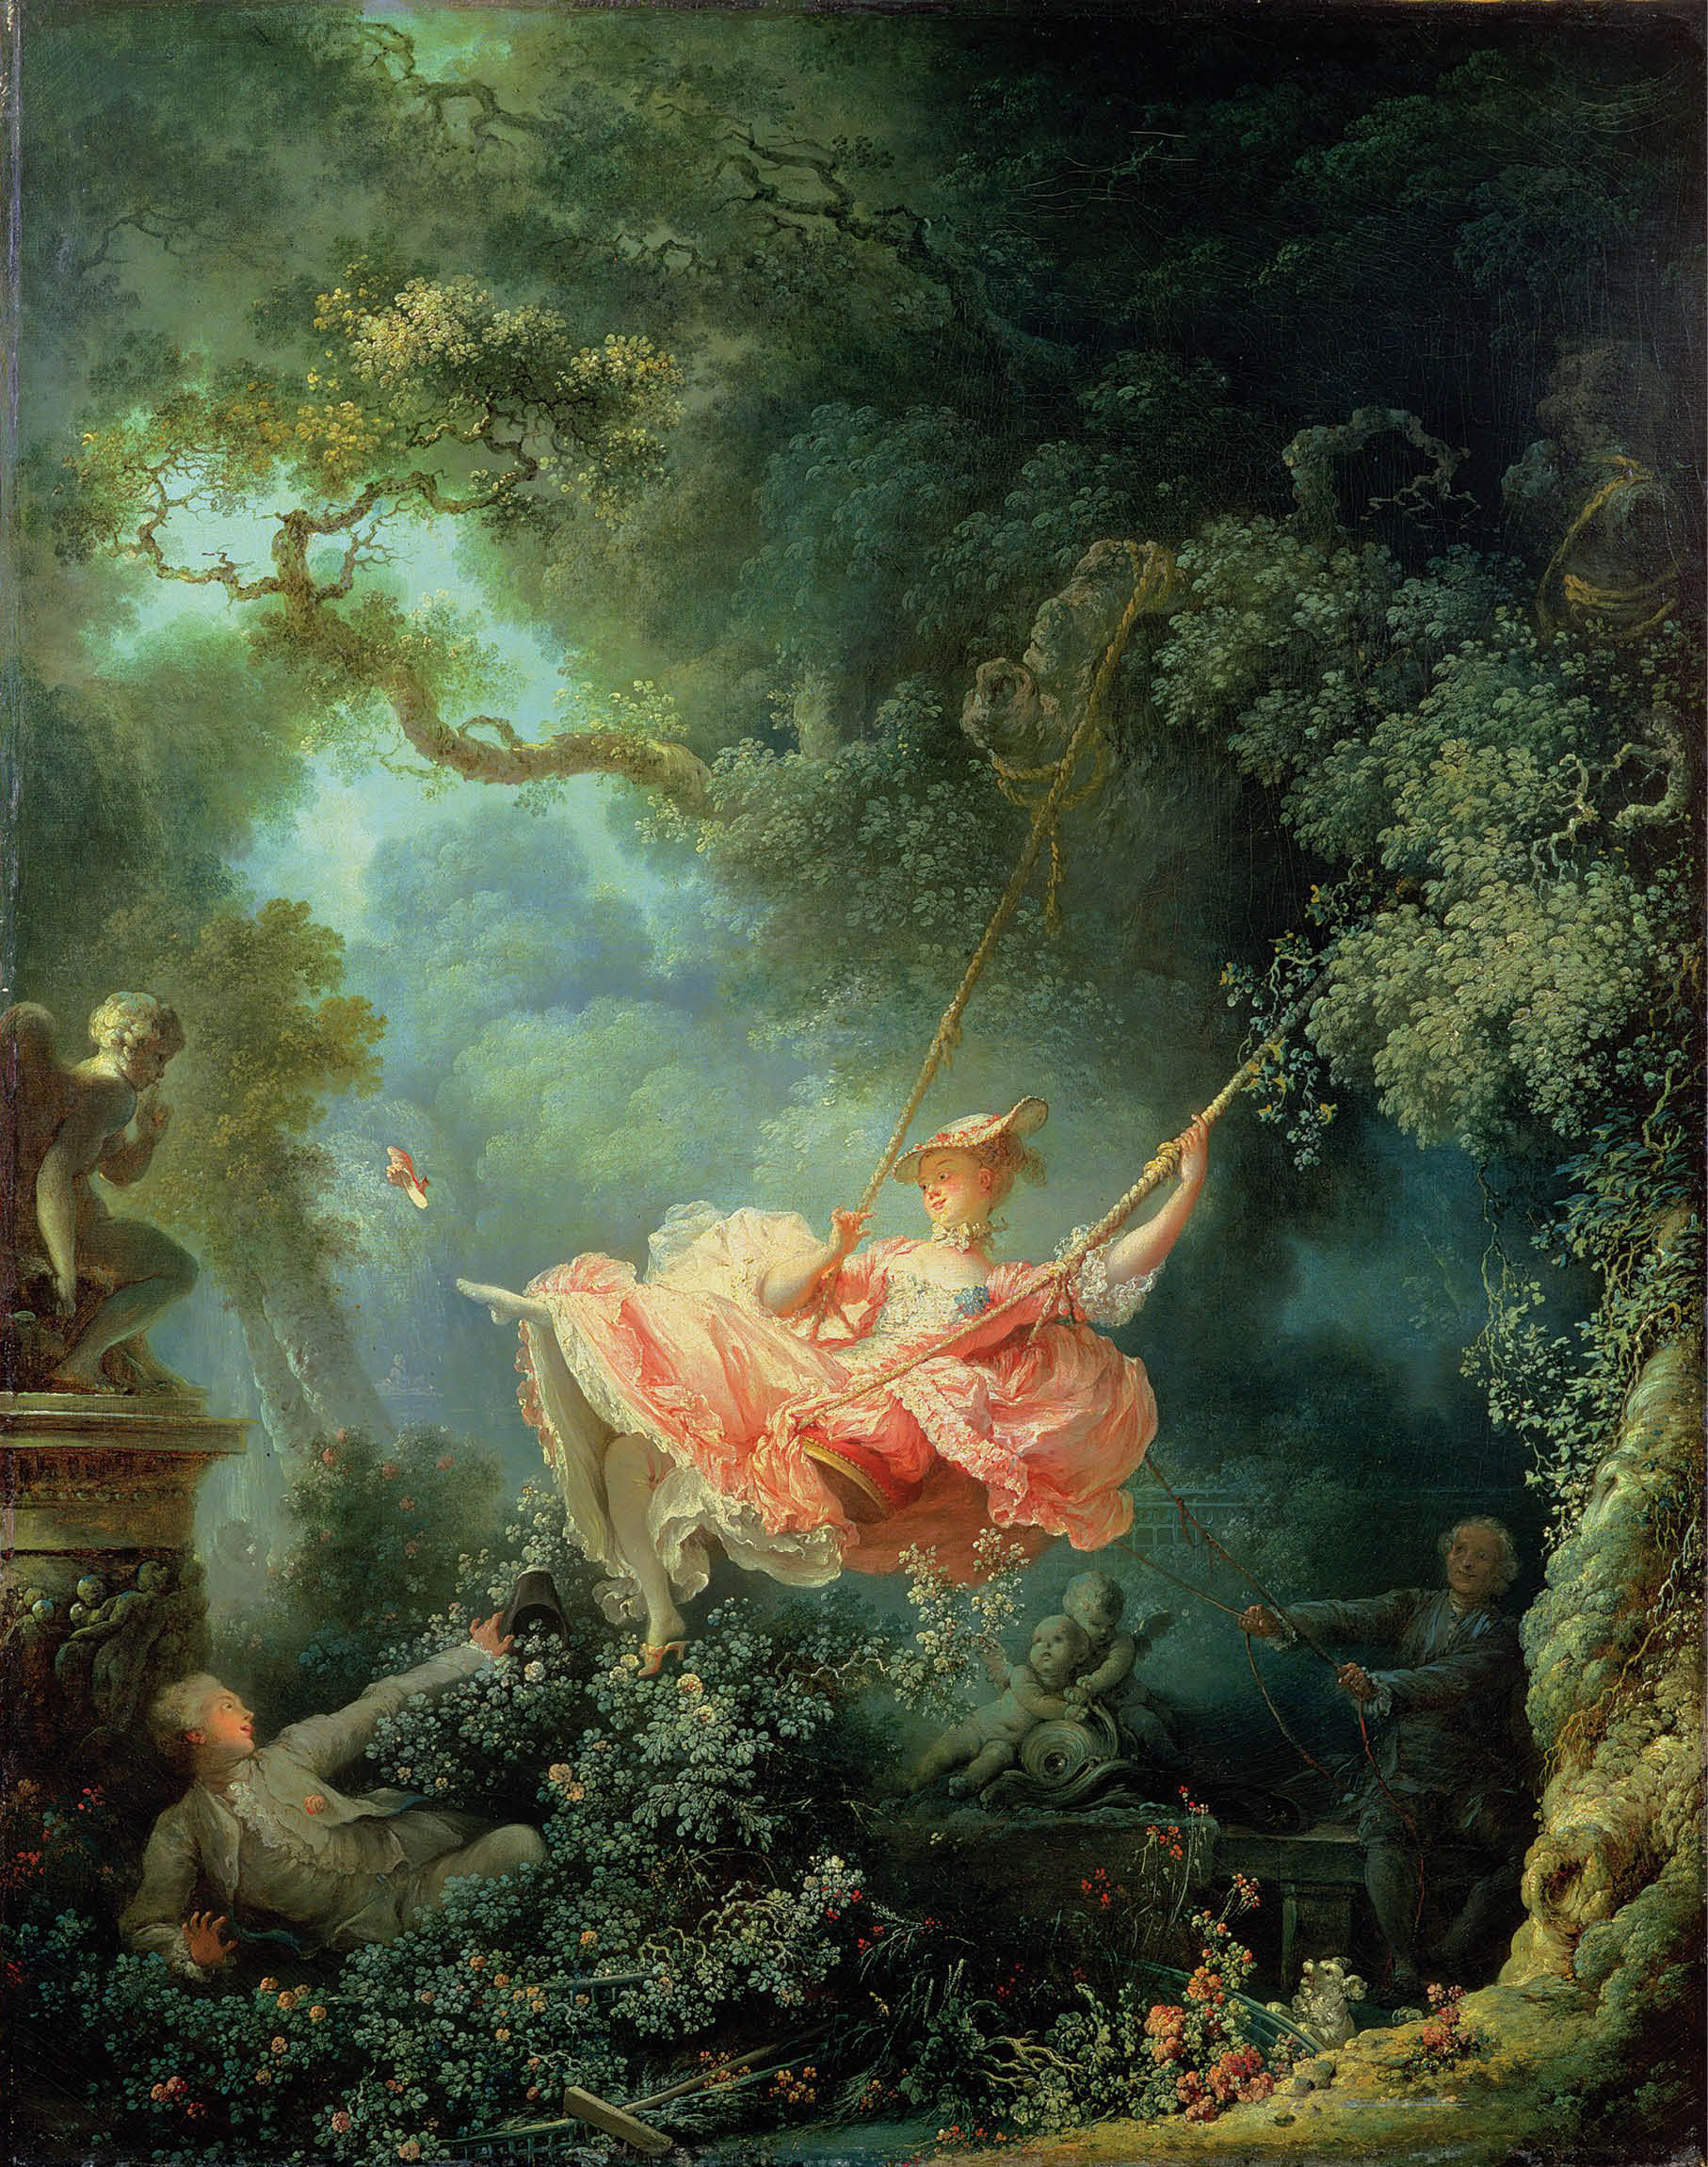 The Swing, 1767 — Jean-Honoré Fragonard